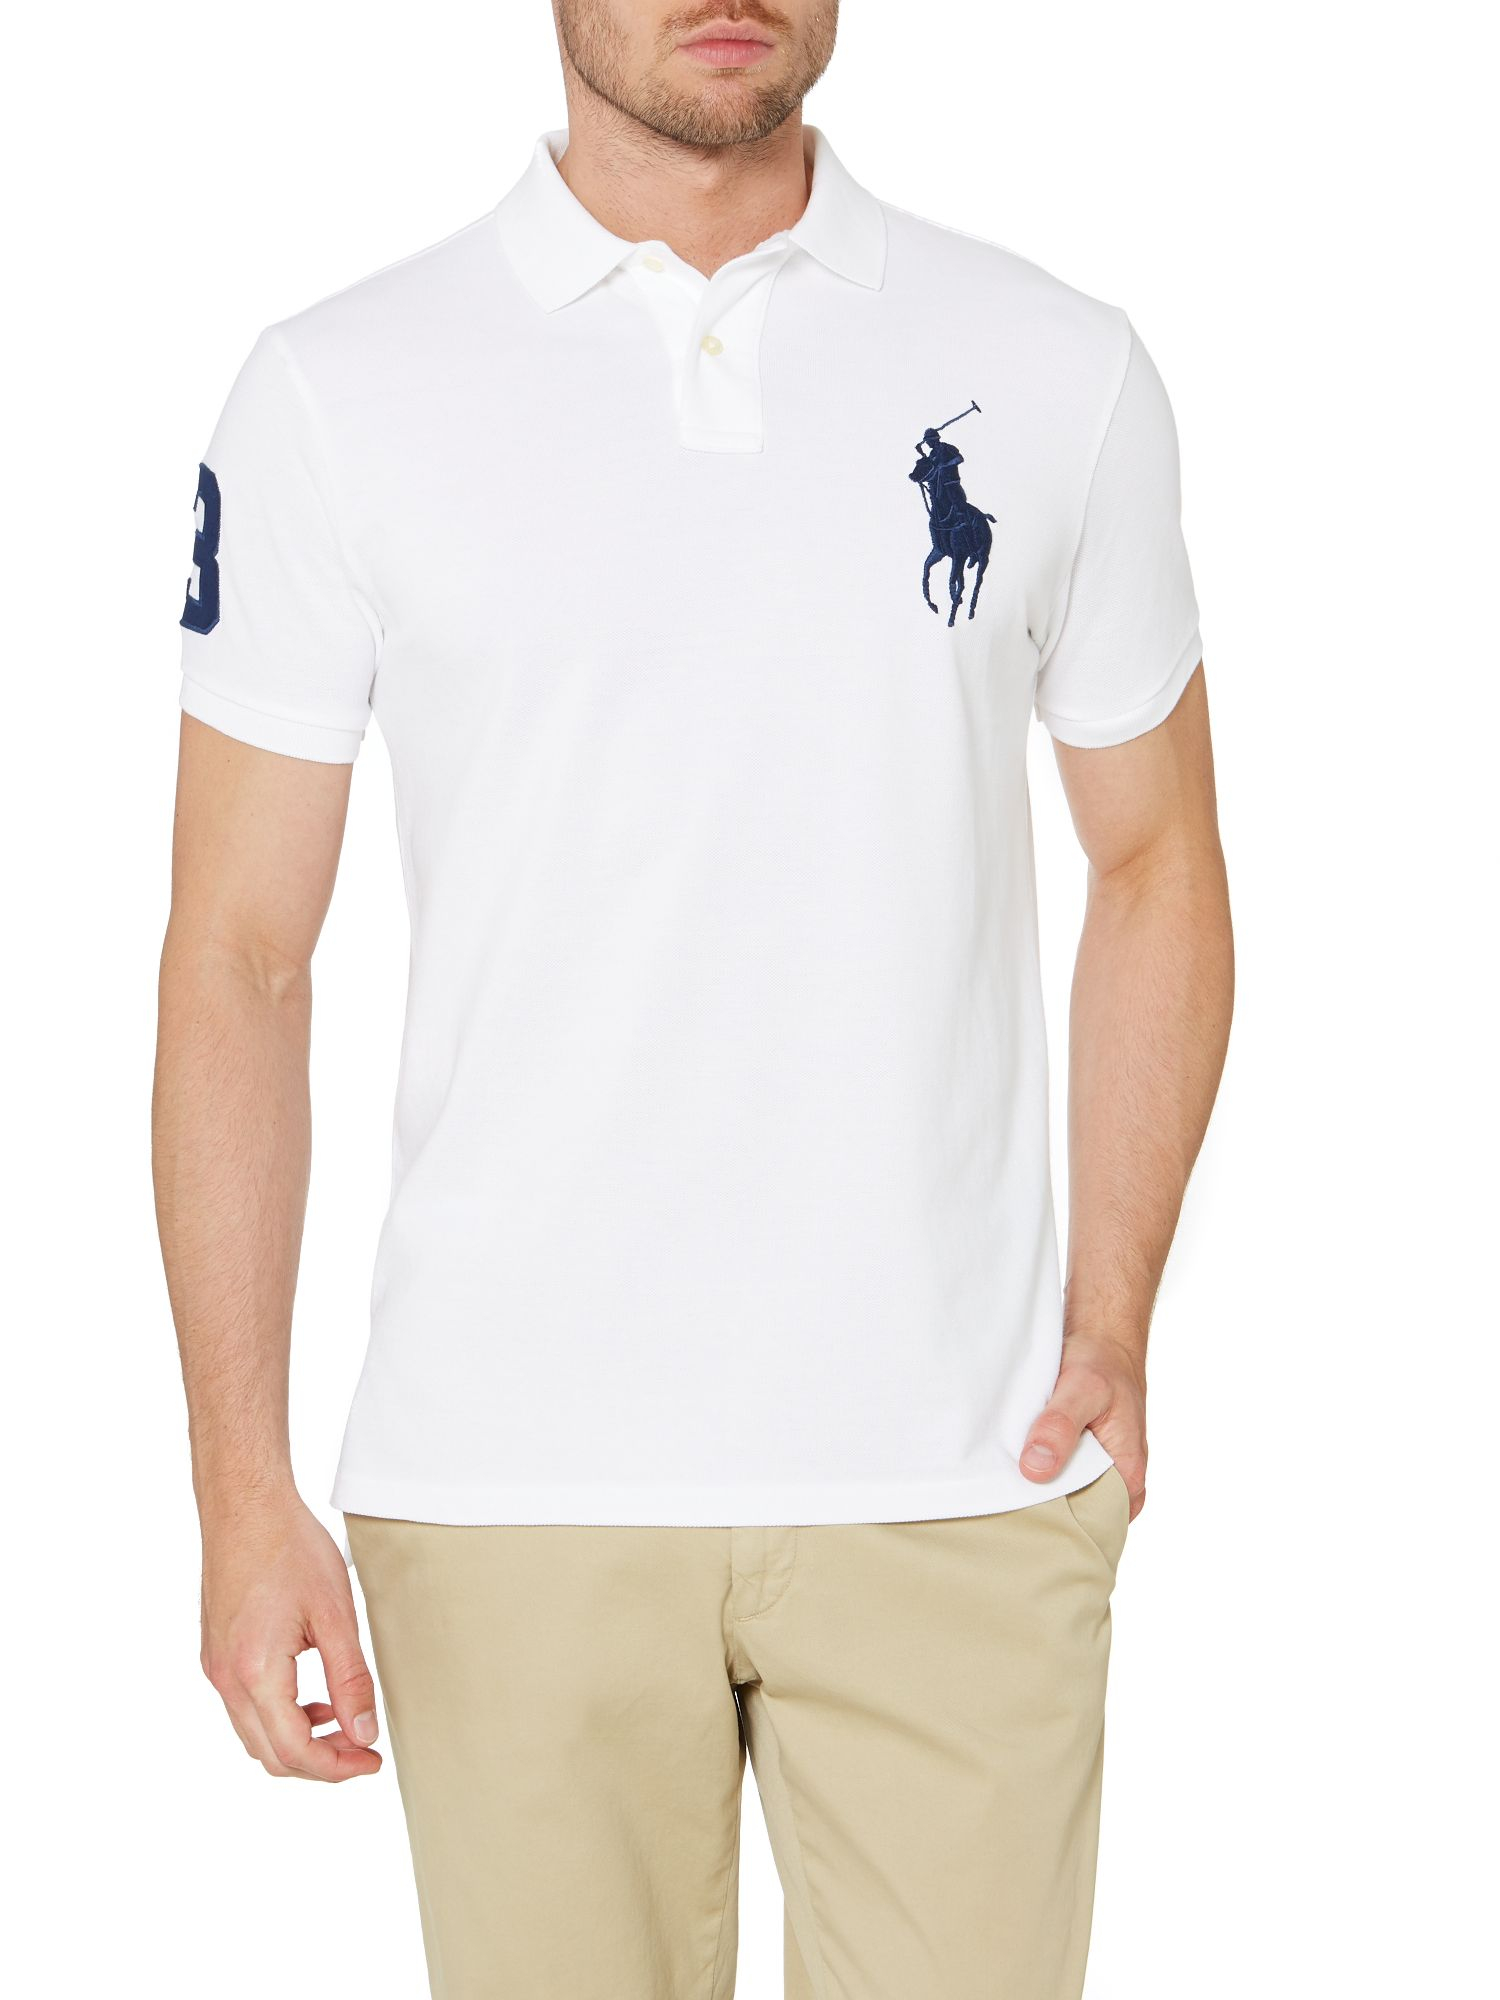 polo ralph lauren custom fit short sleeve big pony polo. Black Bedroom Furniture Sets. Home Design Ideas